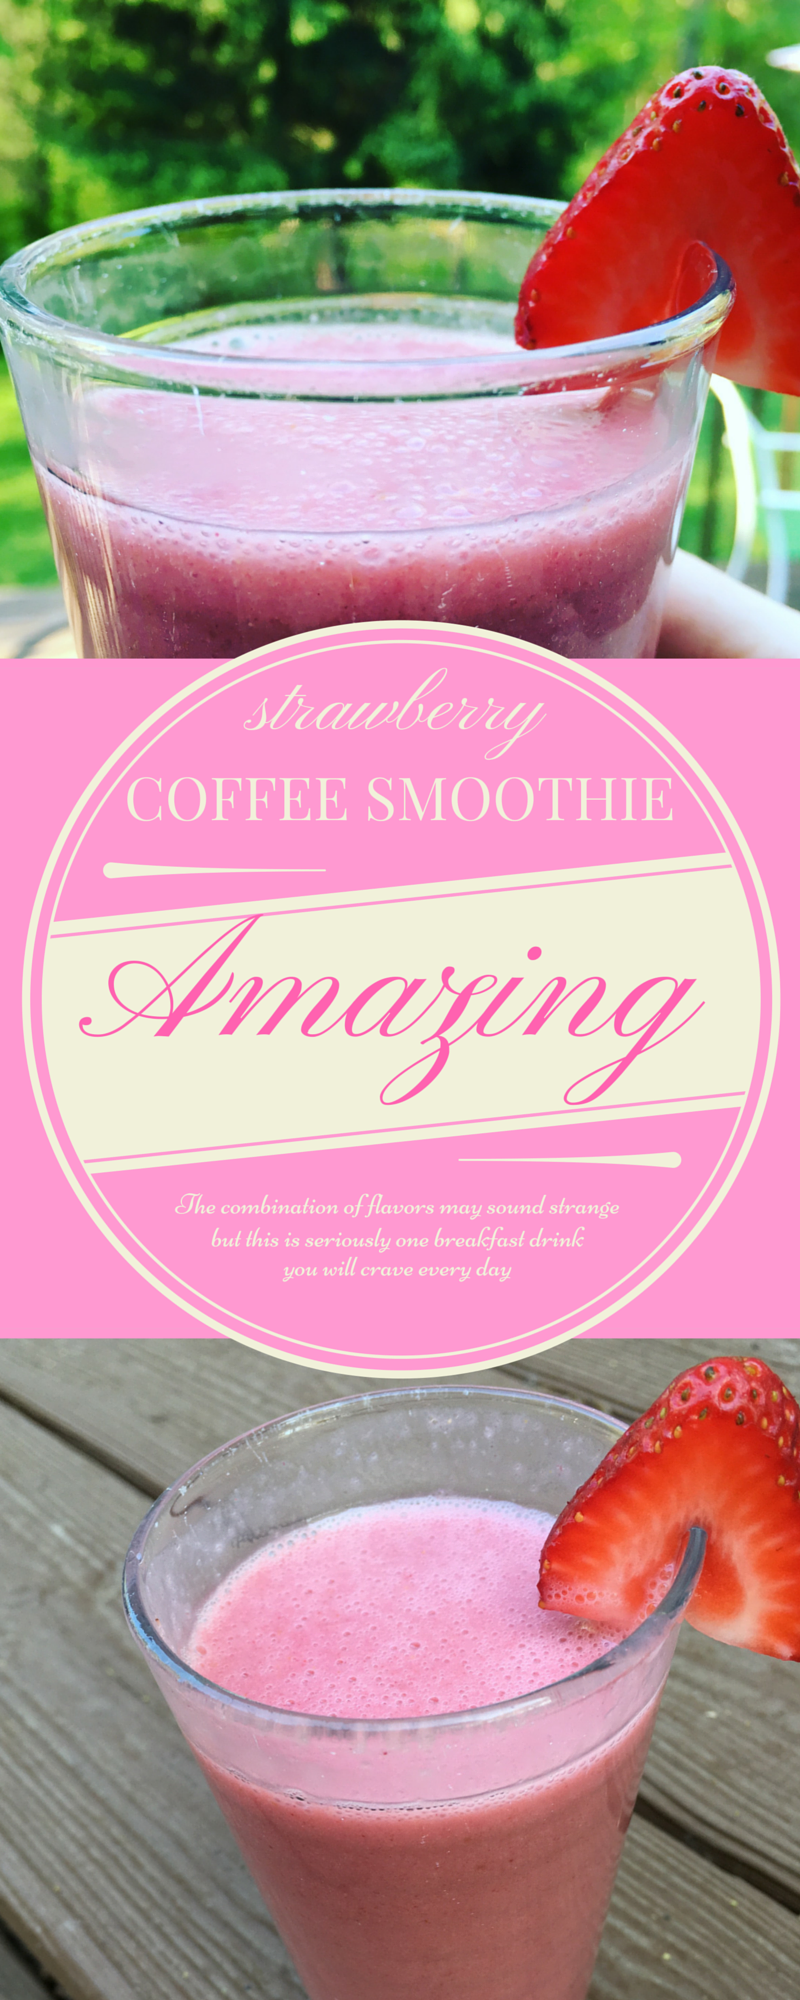 strawberry coffee smoothie gluten dairy free